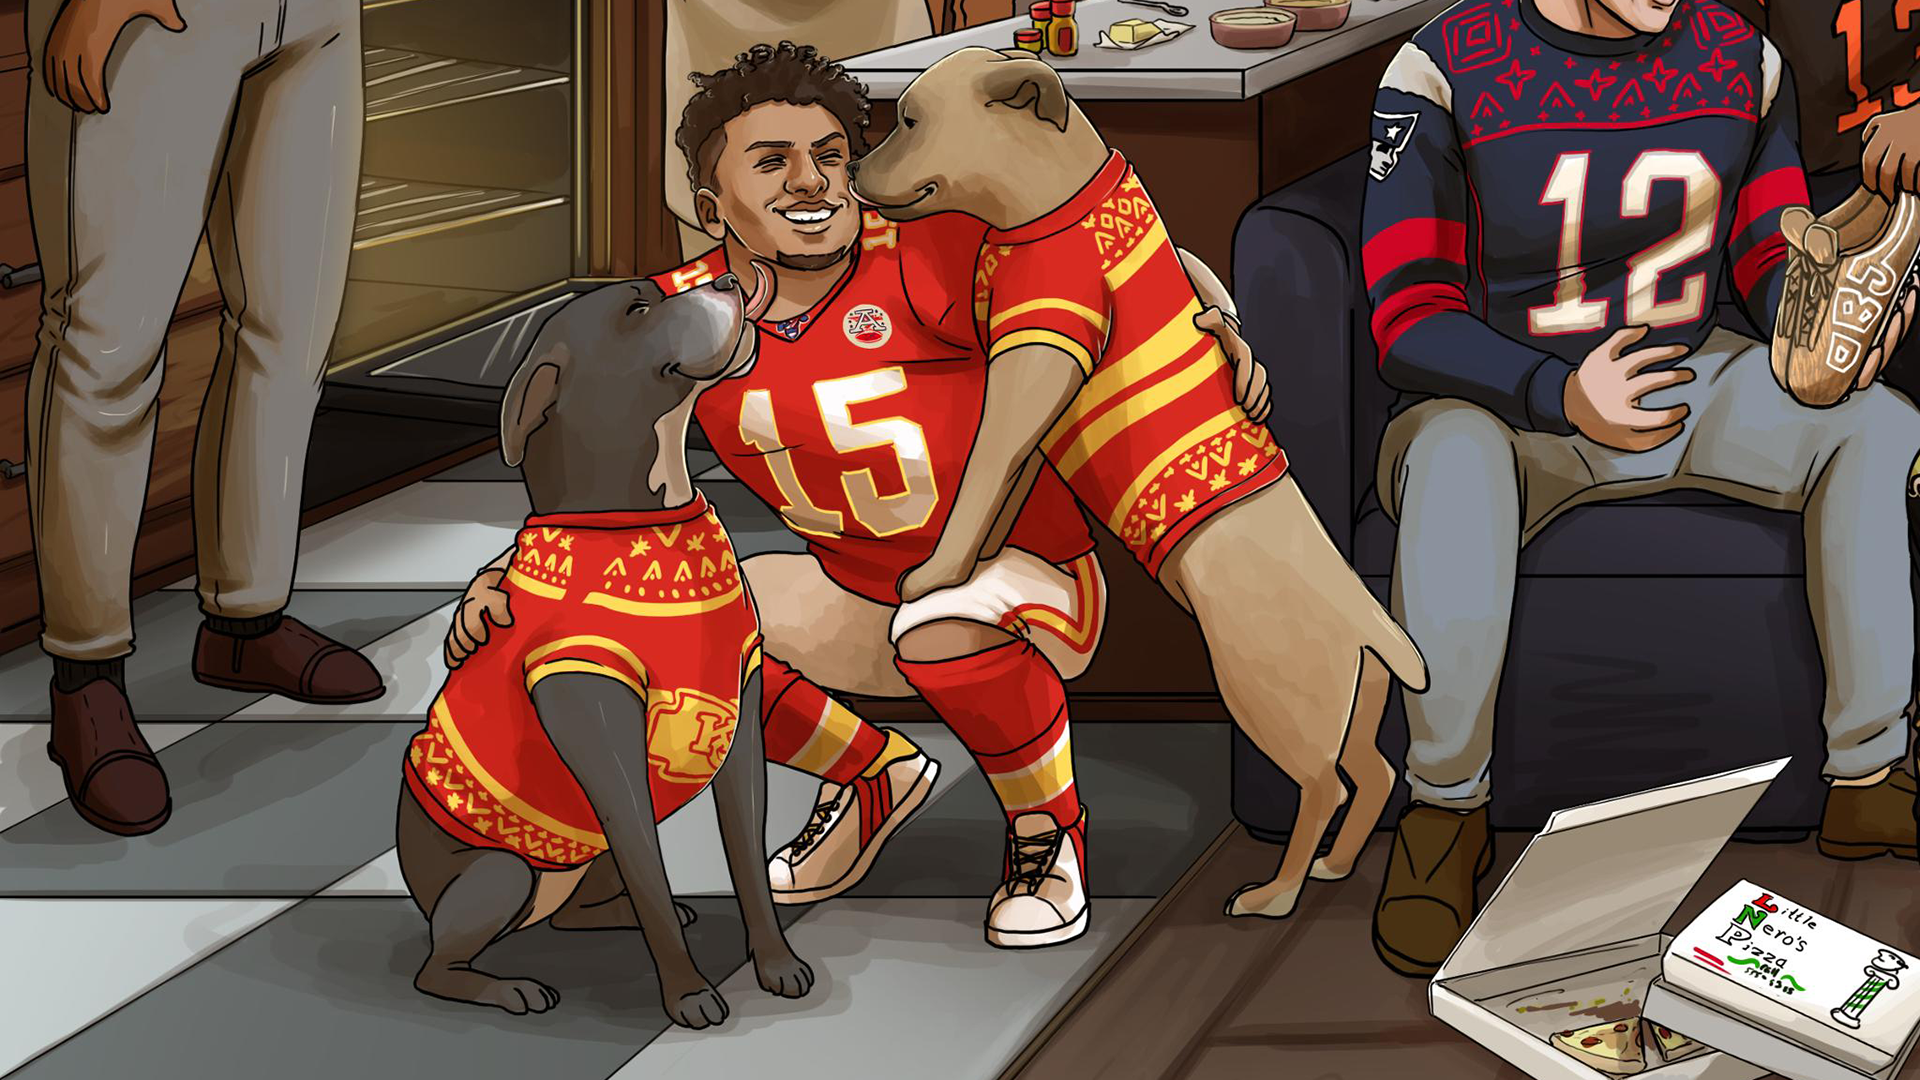 Does this NFL Christmas graphic predict that the 49ers and the 1920x1080